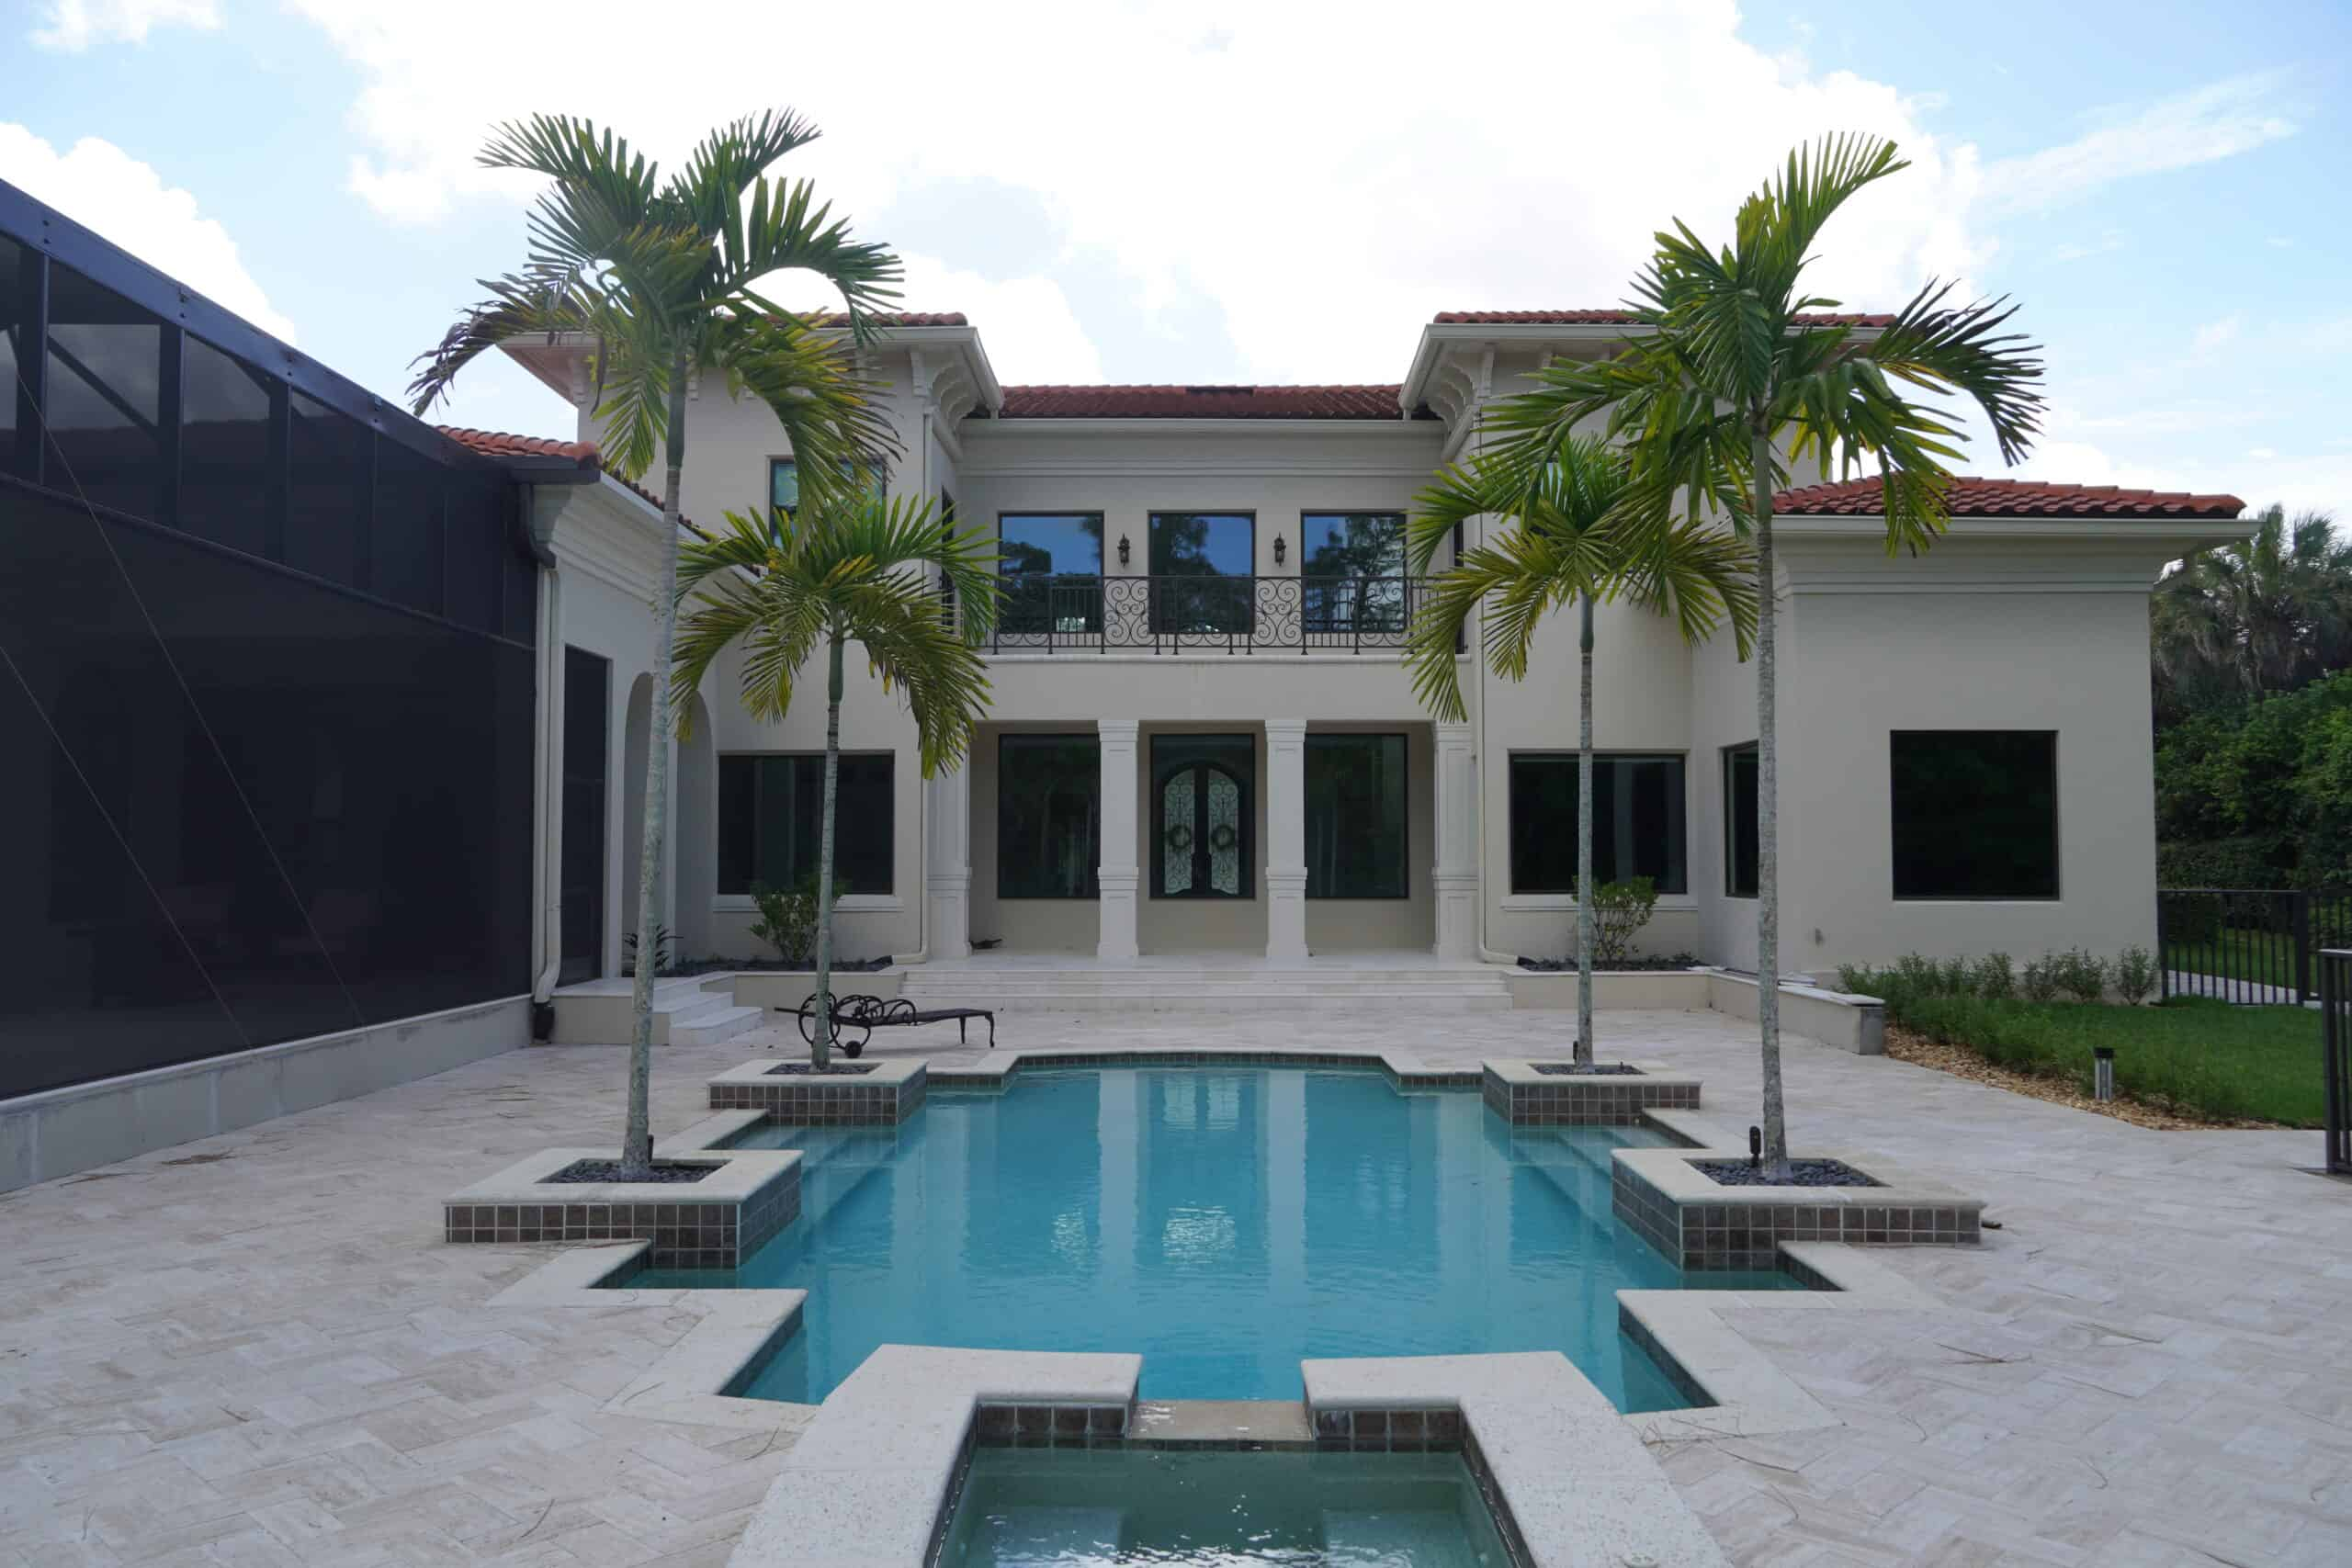 Naples Florida Travertine Pool Deck